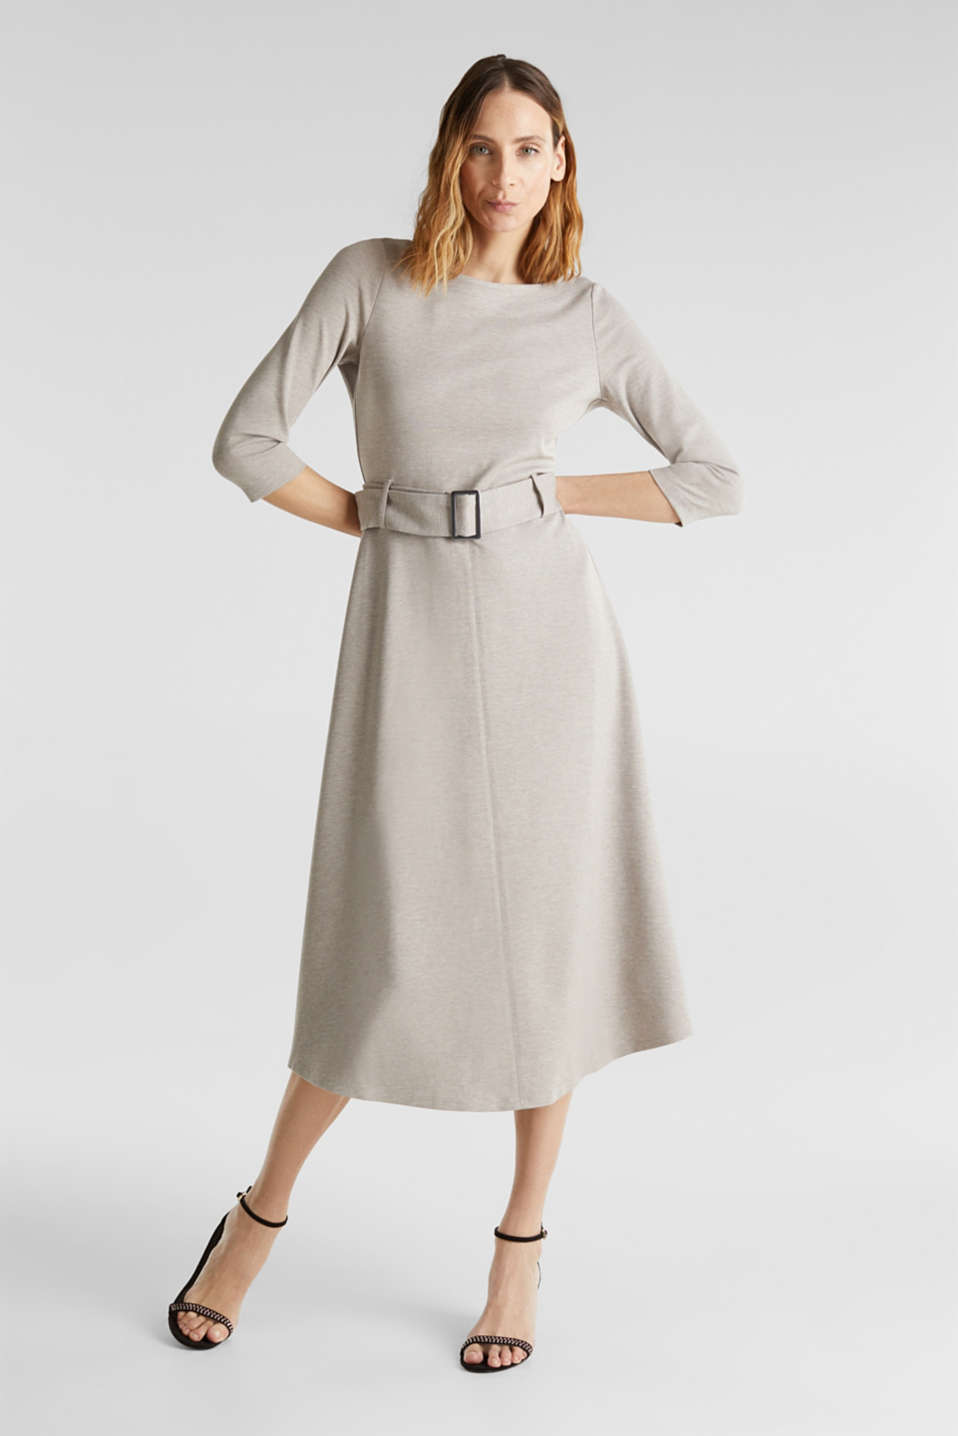 Stretch jersey dress with a belt, LIGHT BEIGE, detail image number 1